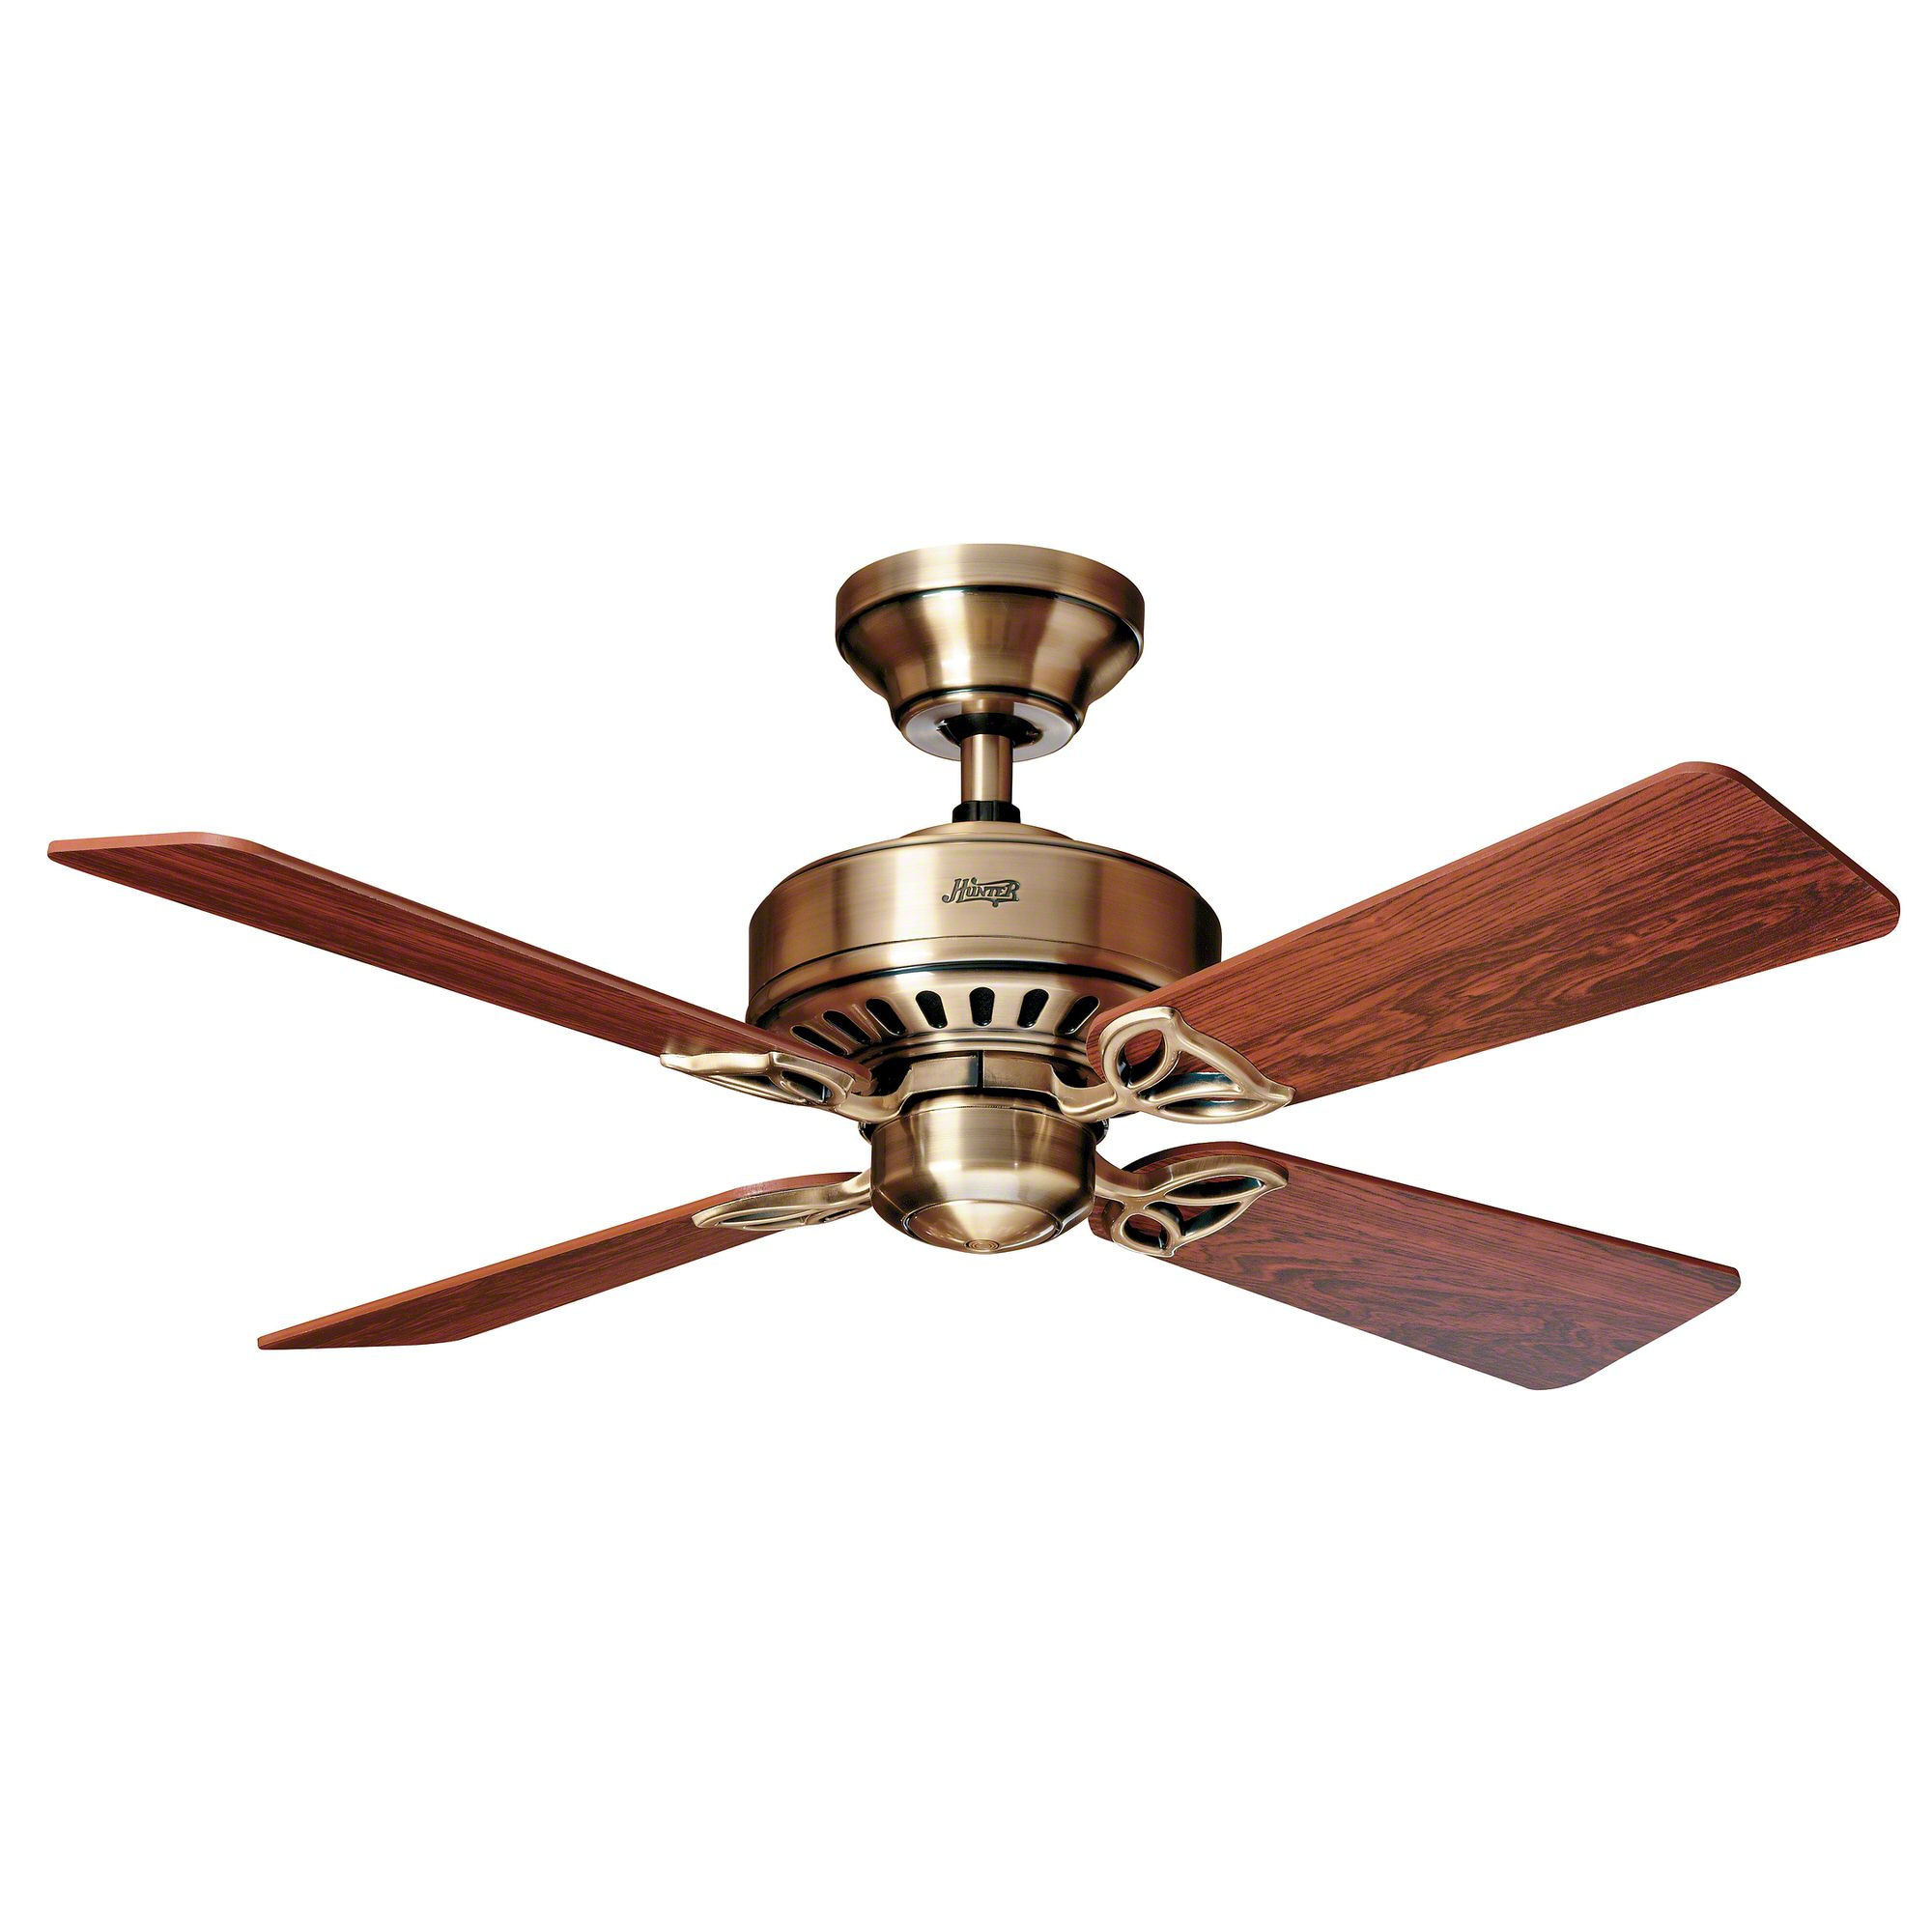 Old Ceiling Fans : New ceiling fan products